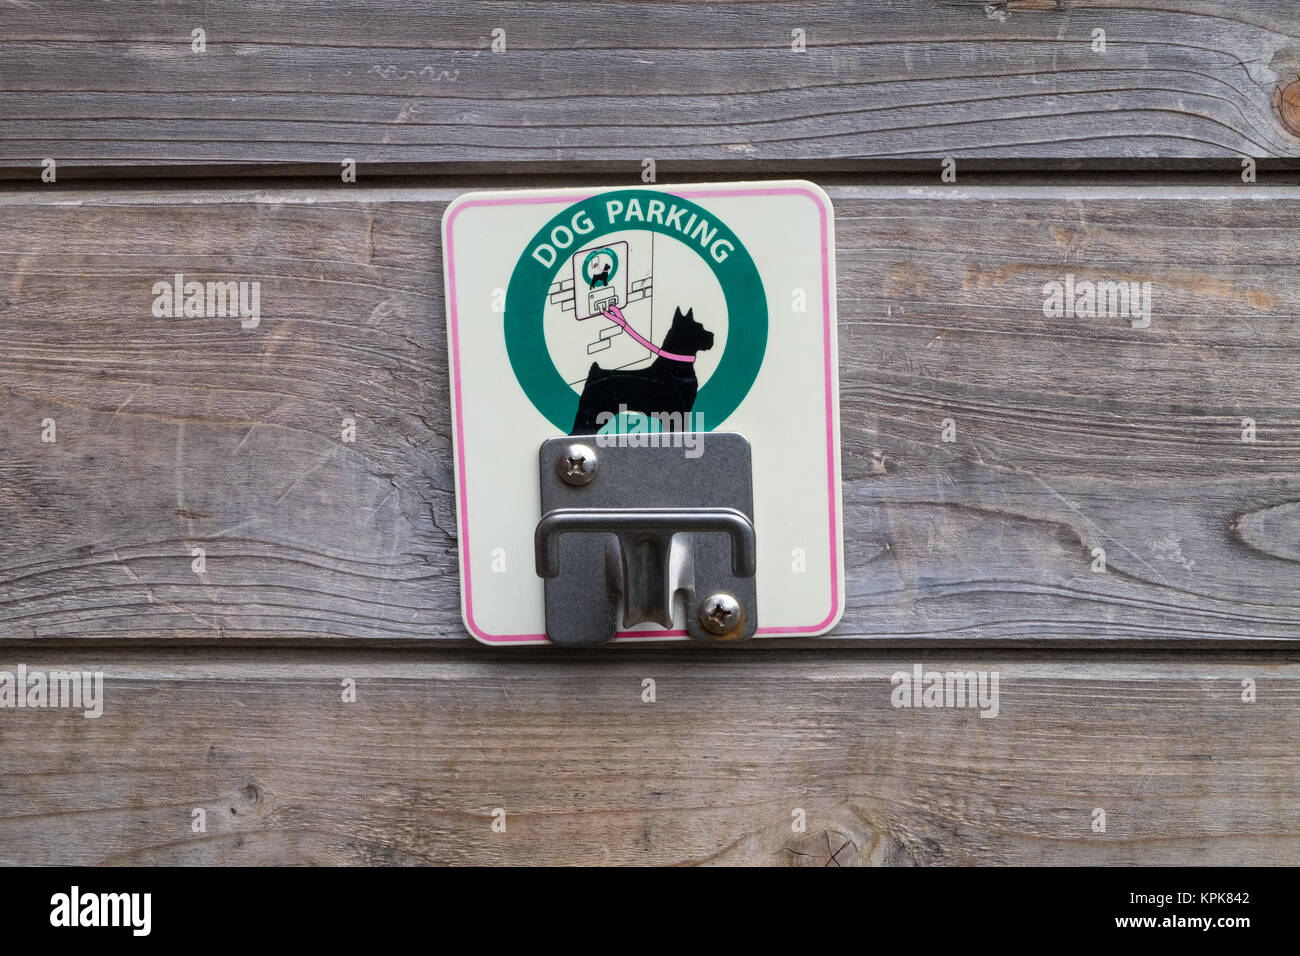 Dog parking hook, Bedgebury National Pinetum at Bedgebury, Kent - Stock Image